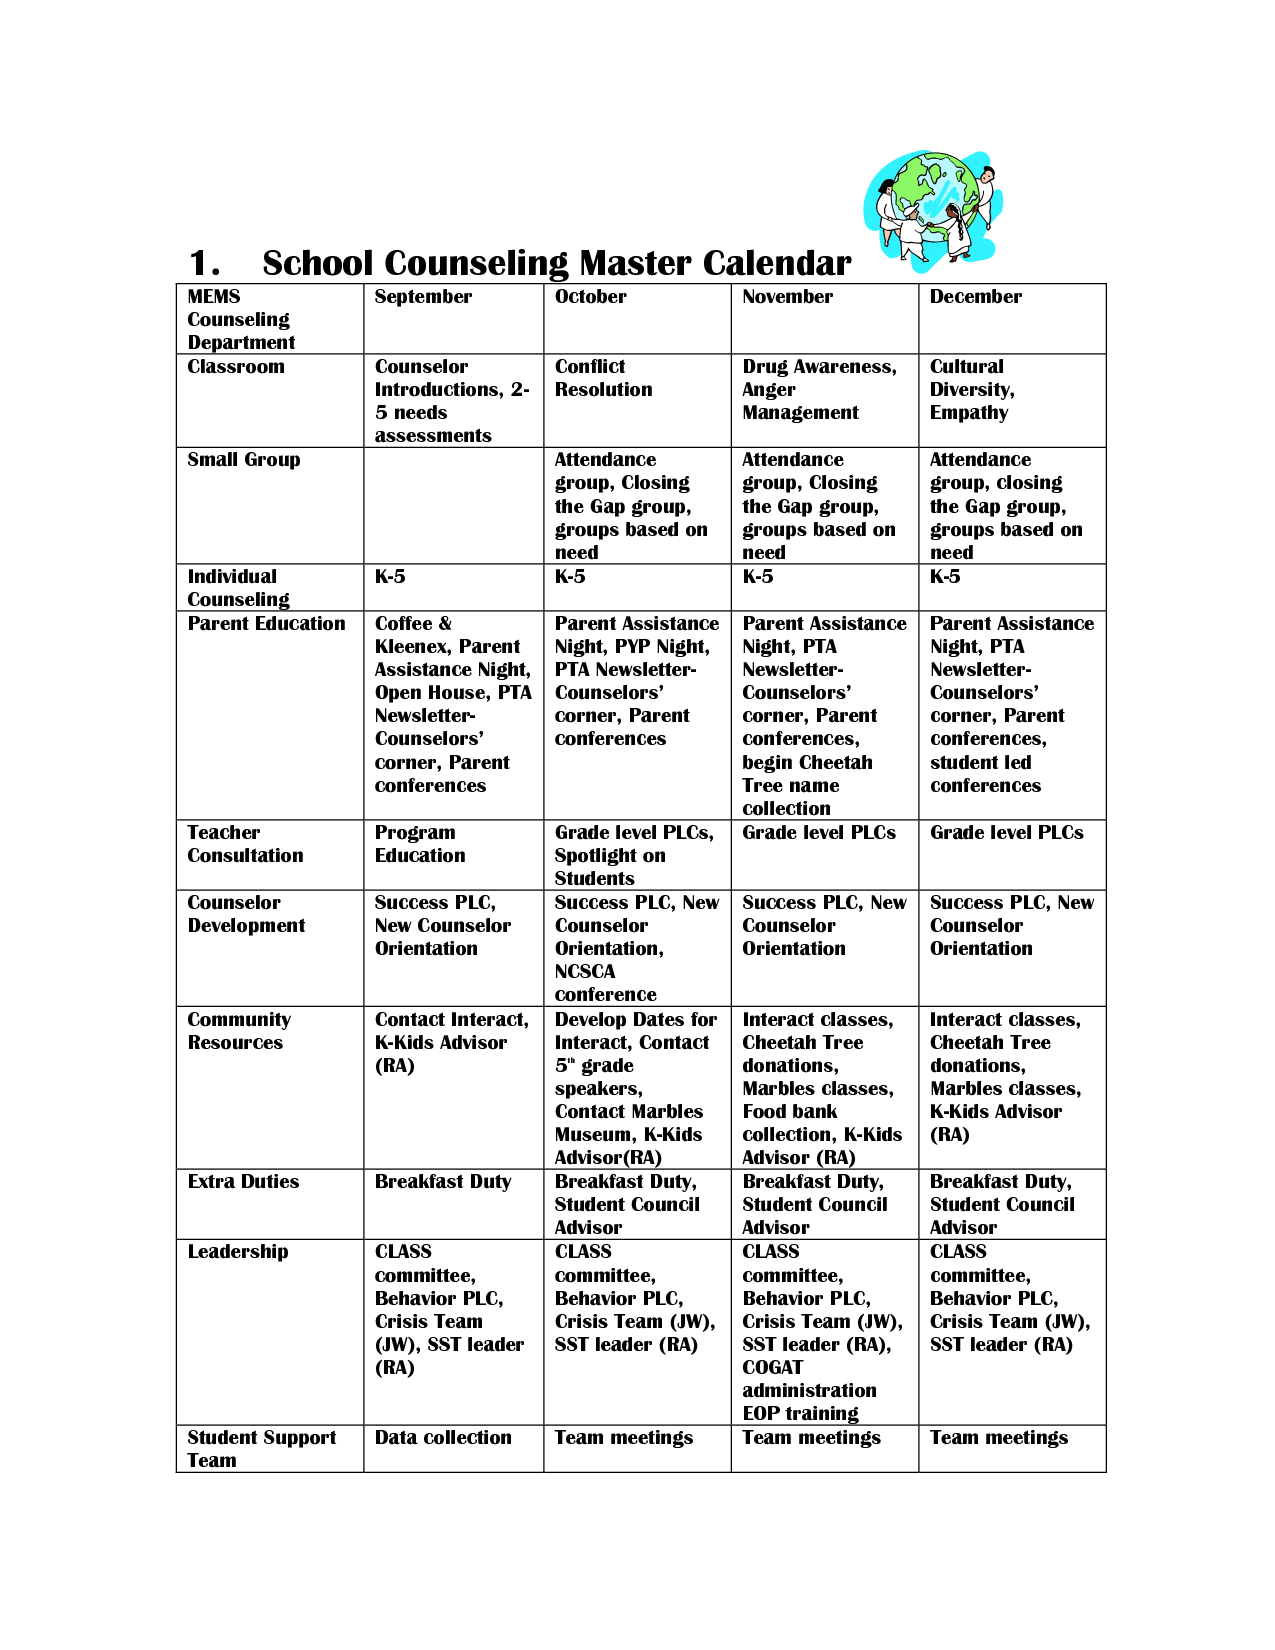 Coral Canyon Elementary School Counseling Guidance Calendar